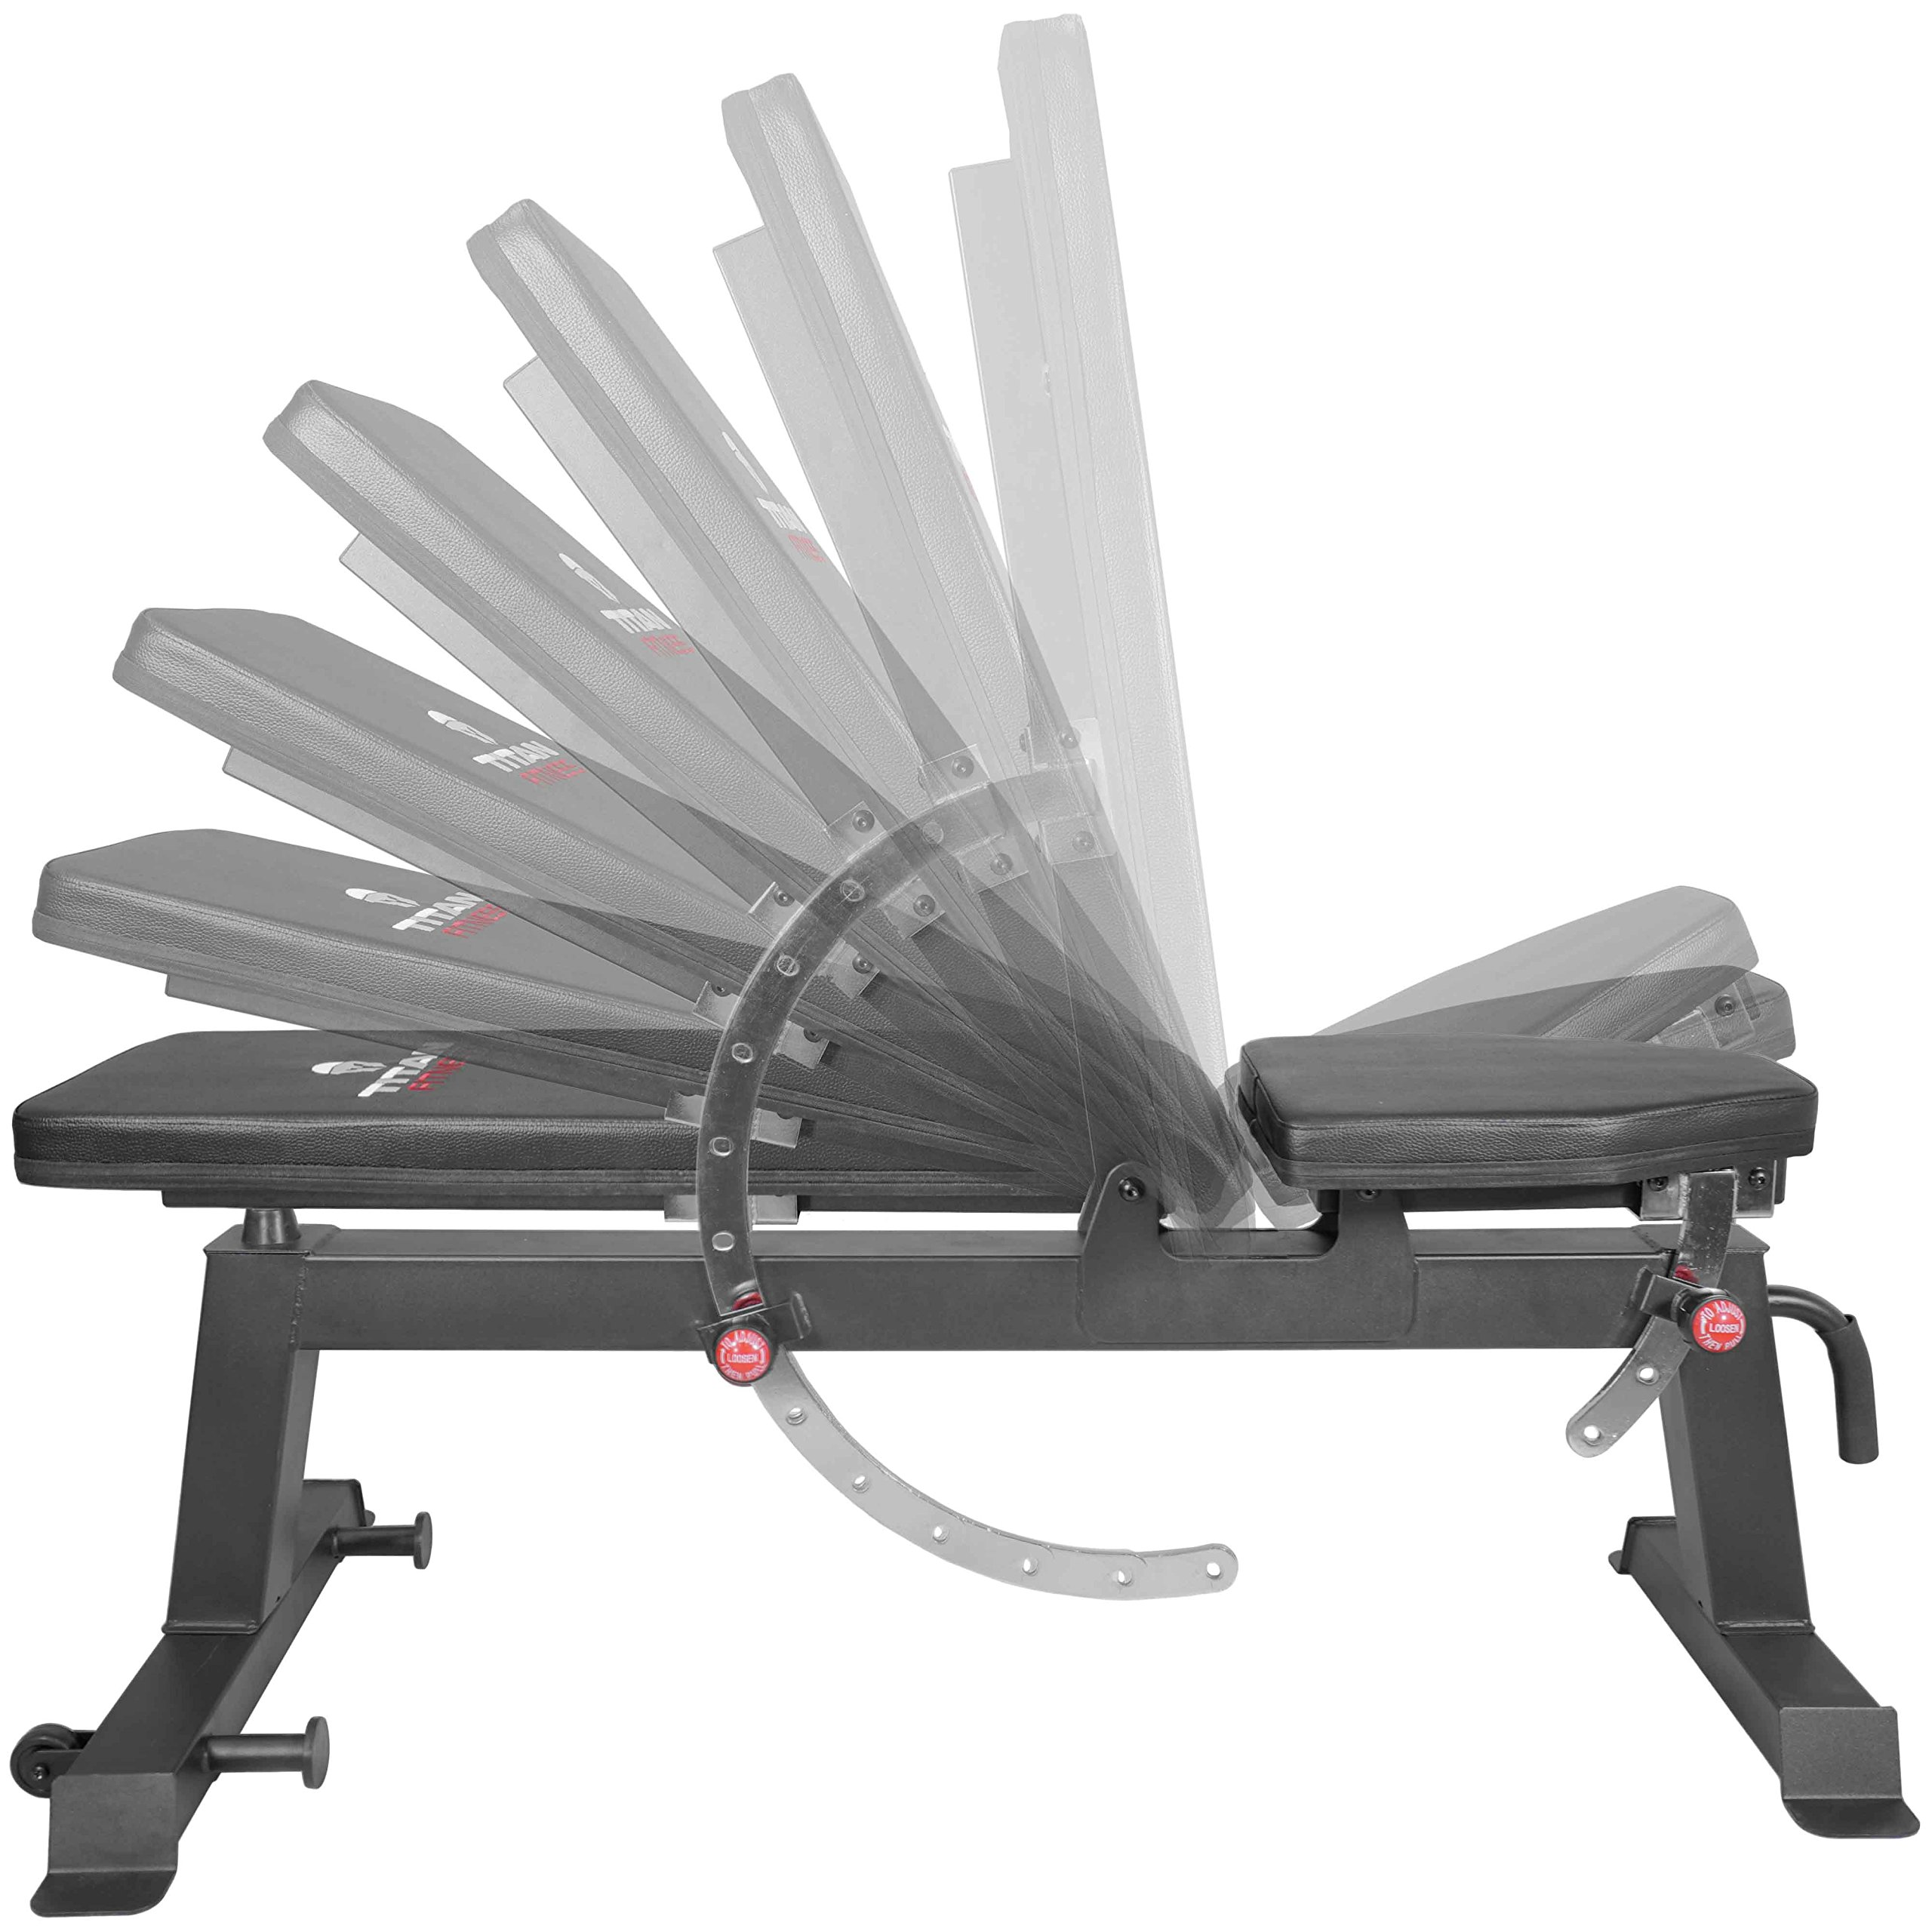 Titan Fitness Adjustable Flat Incline Weight Bench 650 lb Rated Capacity by Titan Fitness (Image #3)